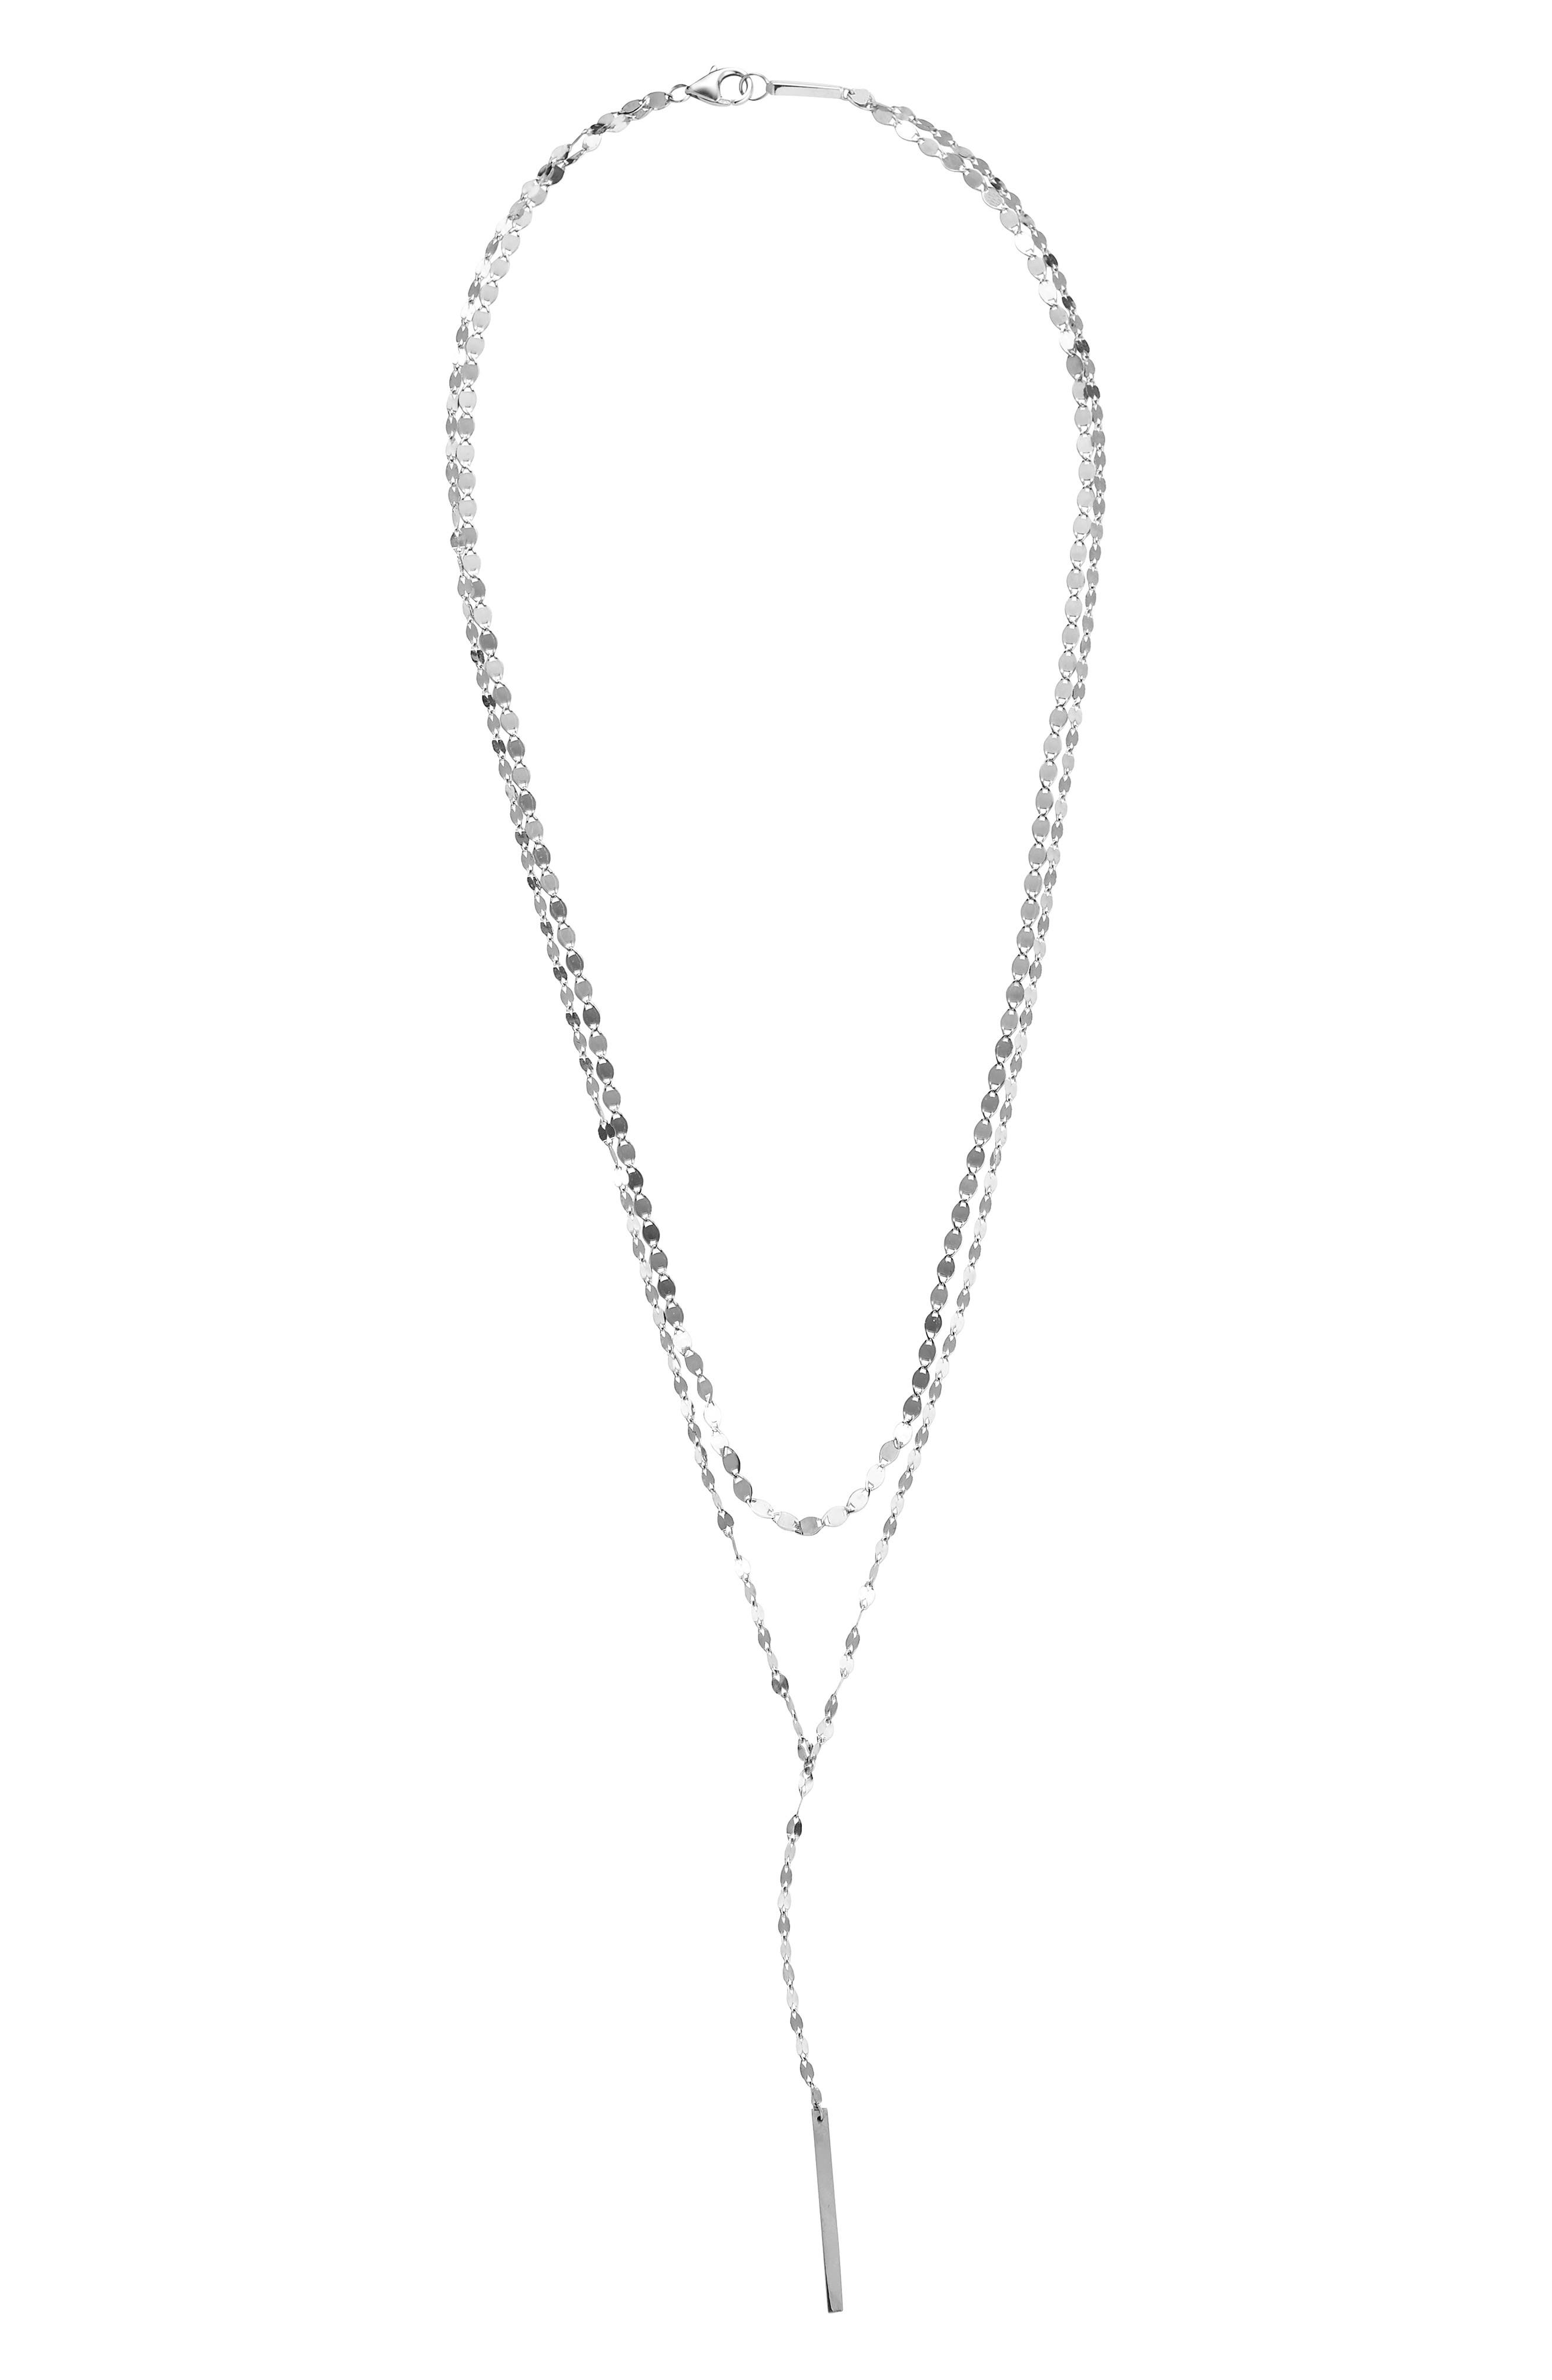 LANA JEWELRY Y-Necklace in White Gold